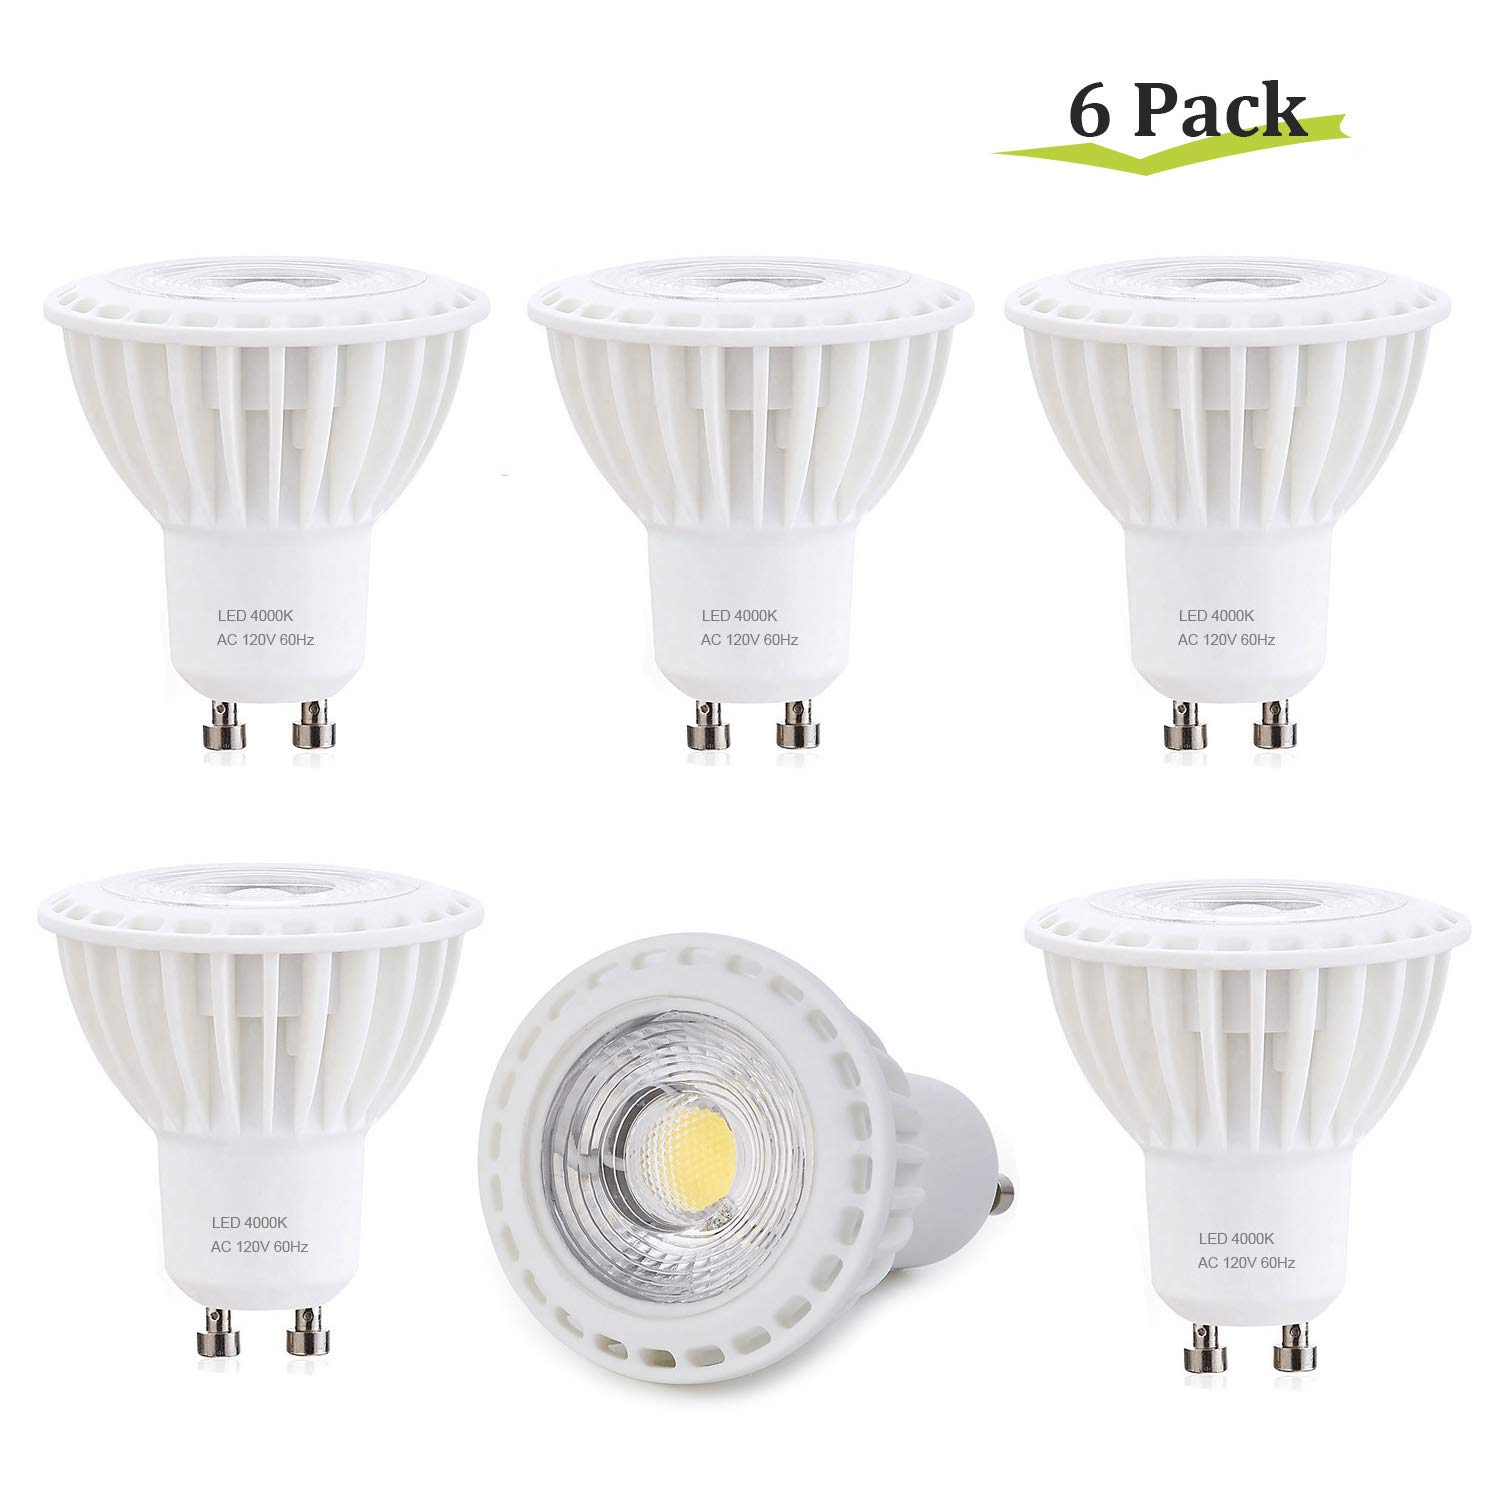 6 Pack 120V Spot Lights Indoor Recessed Track Lighting ,5000K Daylight White,500LM,38/° Narrow Beam Angle GU10 LED Bulbs Non-Dimmable,GU10 Base Spotlight Lamp 5W 50W Halogen Bulb Replacement